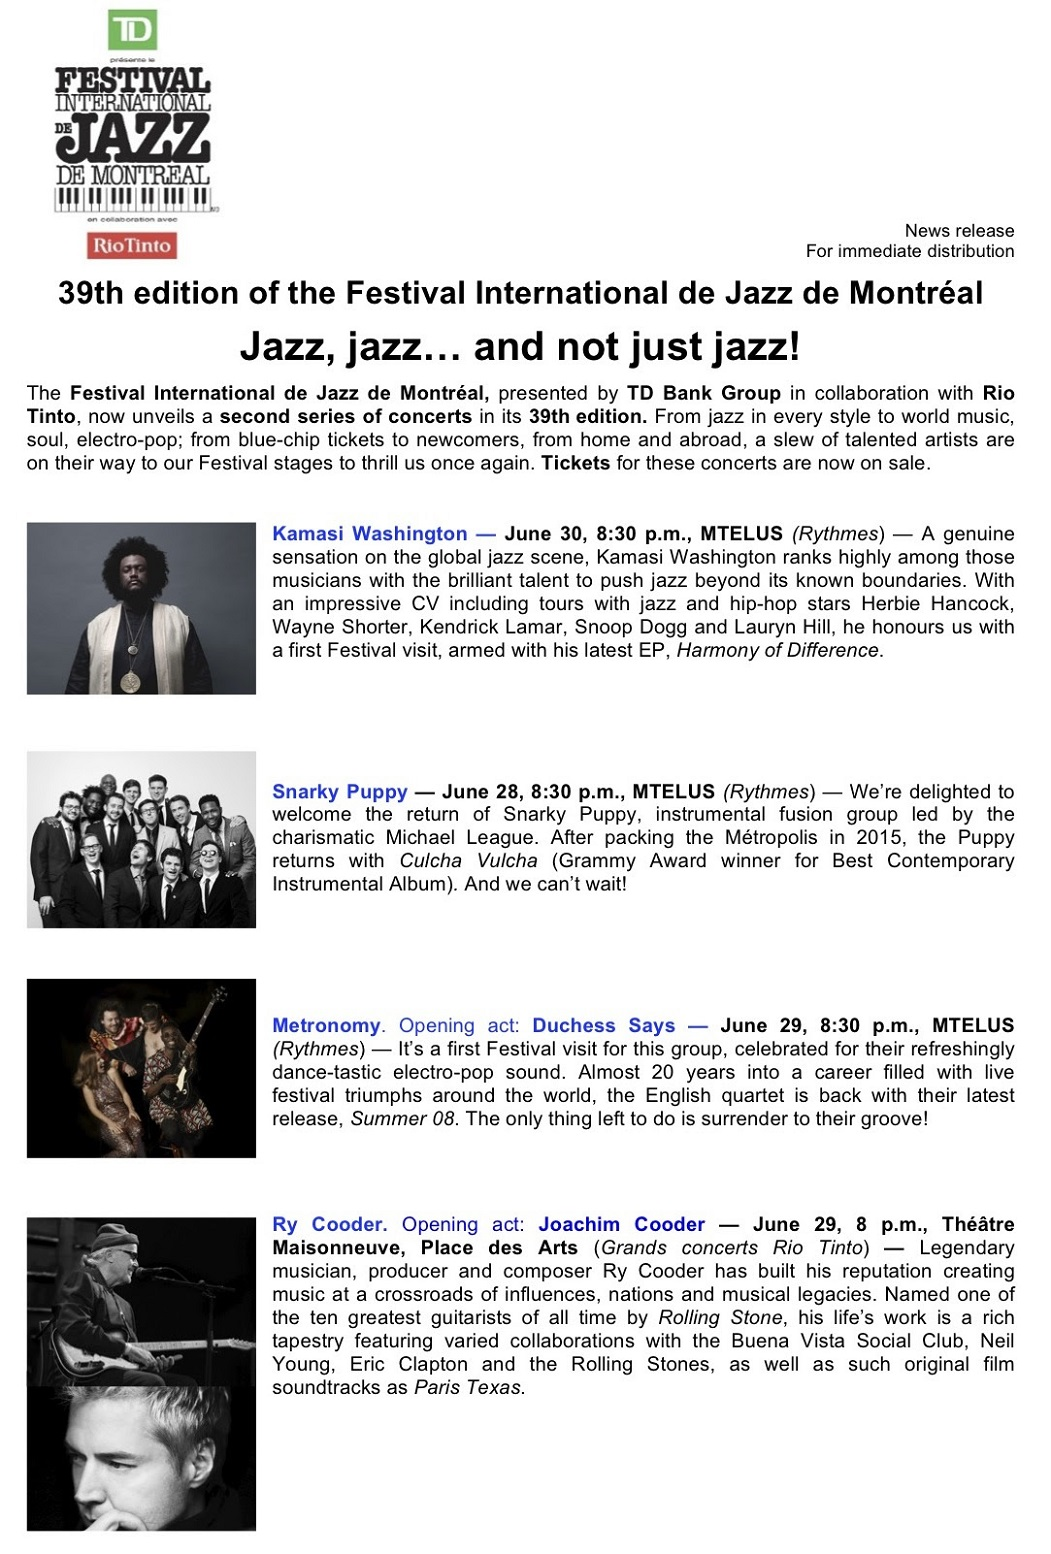 The full schedule, which includes jazz in every style, world music, soul,  and electro-pop – from blue-chip tickets to newcomers, from home and  abroad, ...